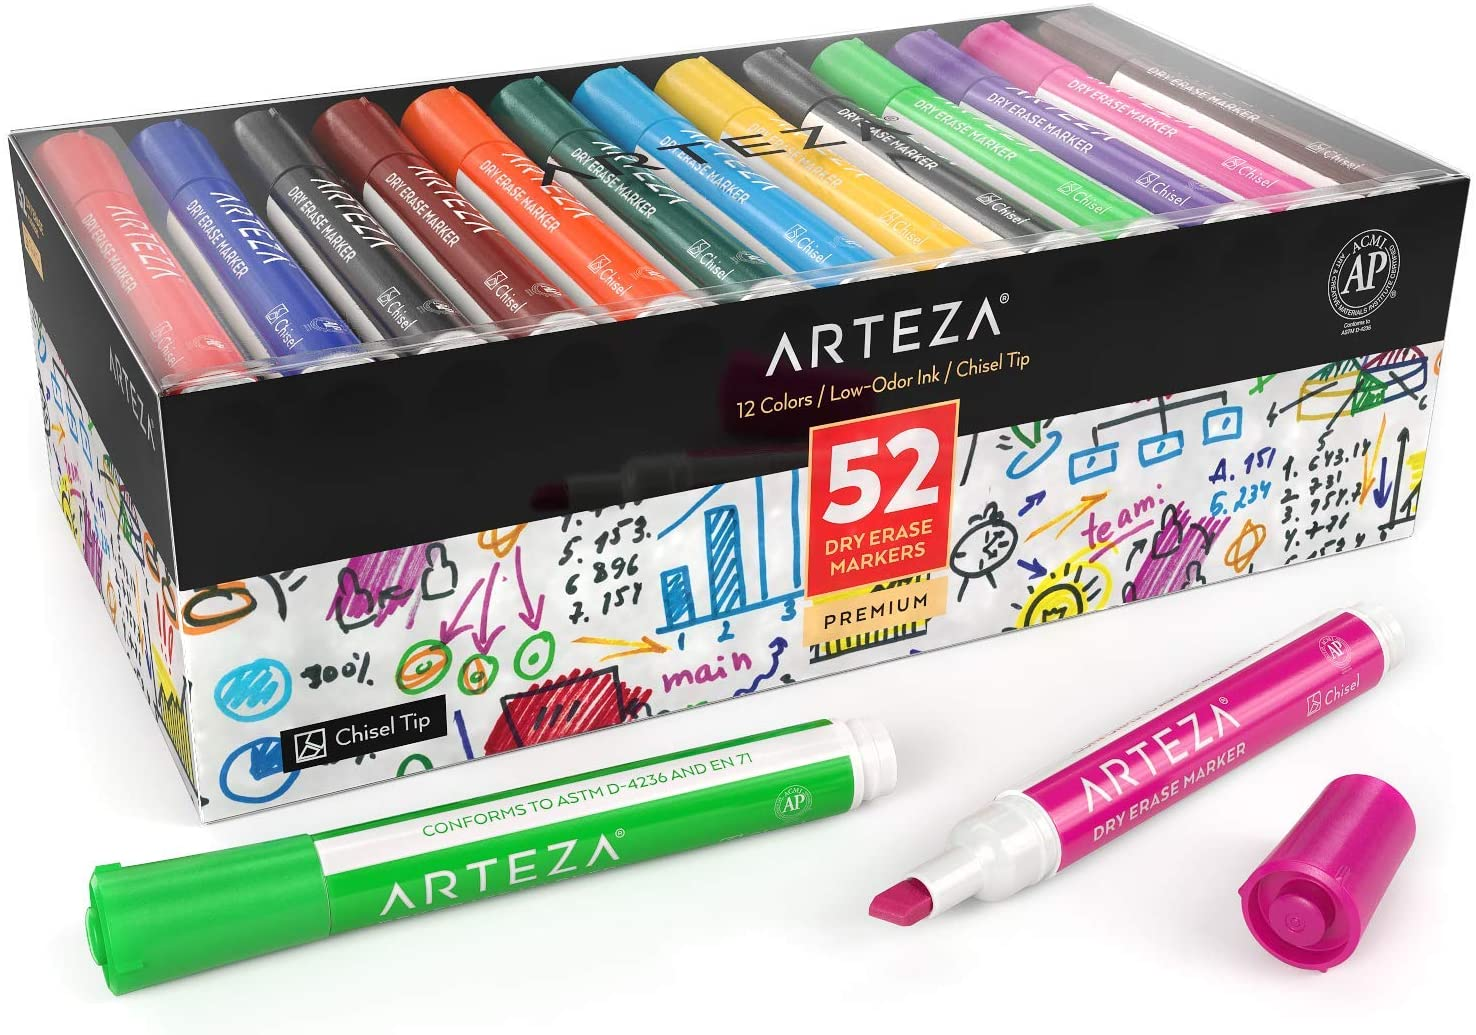 ARTEZA Dry Erase Markers, Bulk Pack of 52